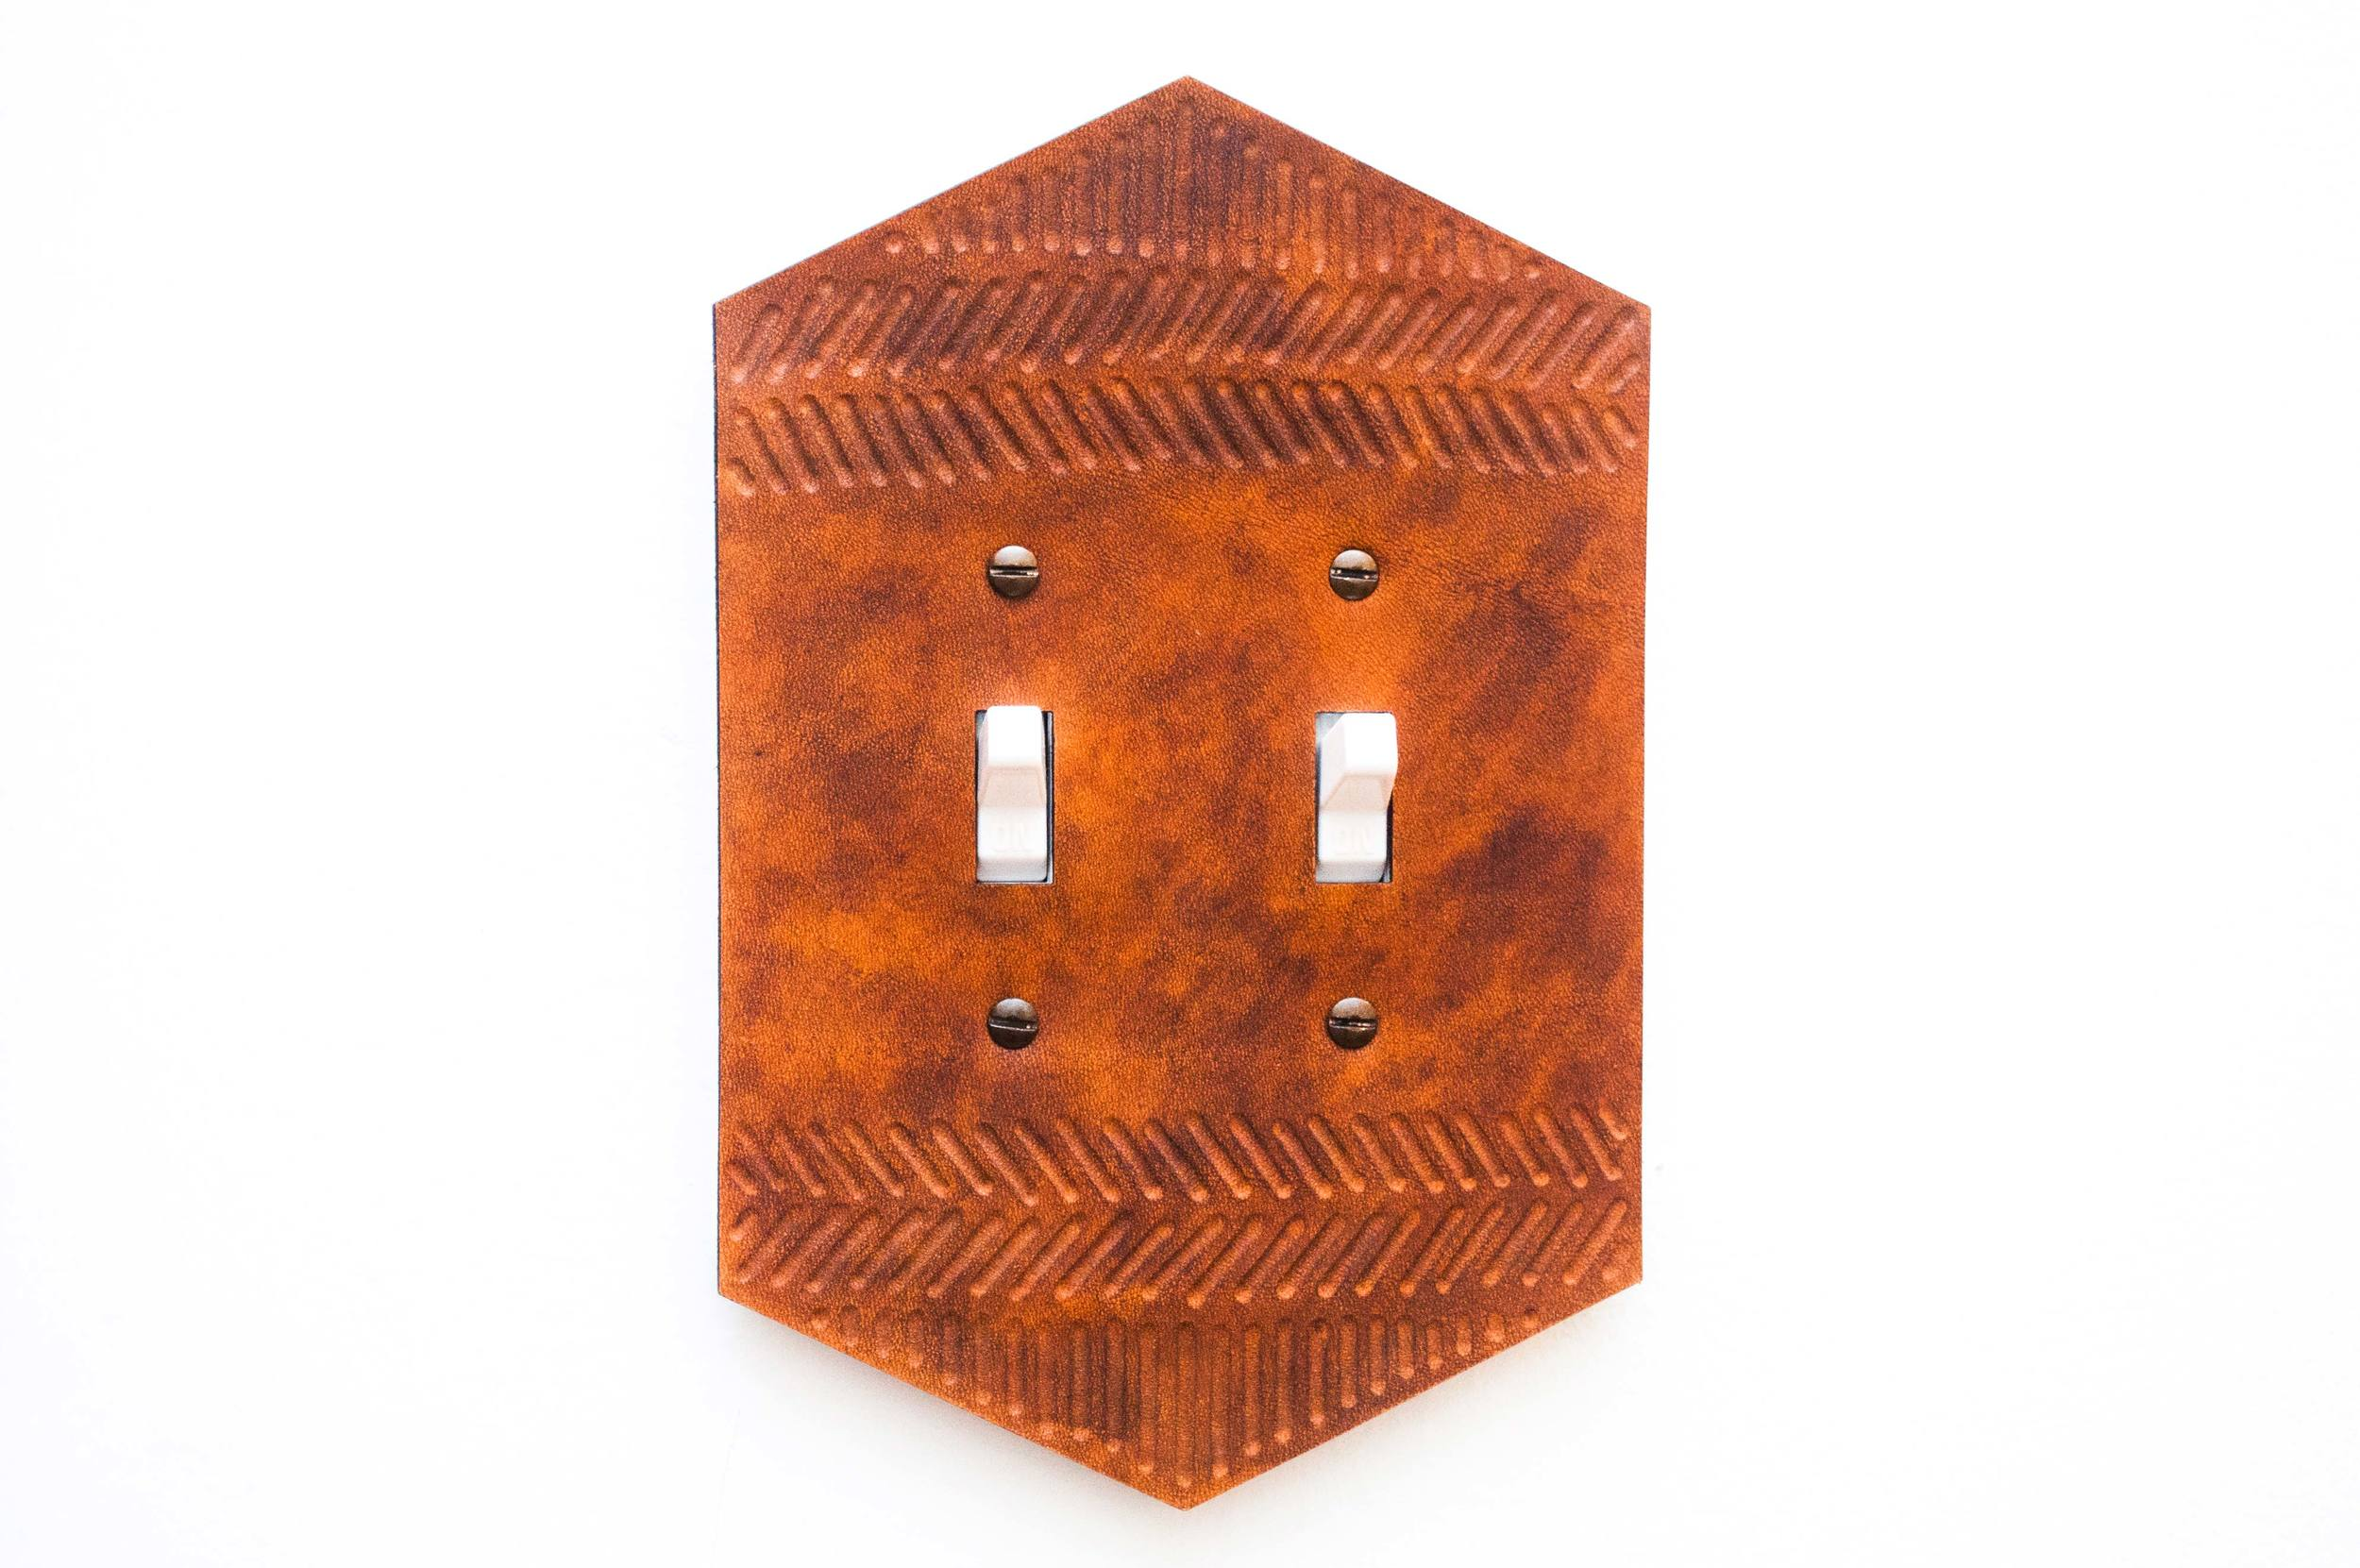 Canoe hand tooled leather light switch plate at Salt & Time Butcher Shop & Salumeria